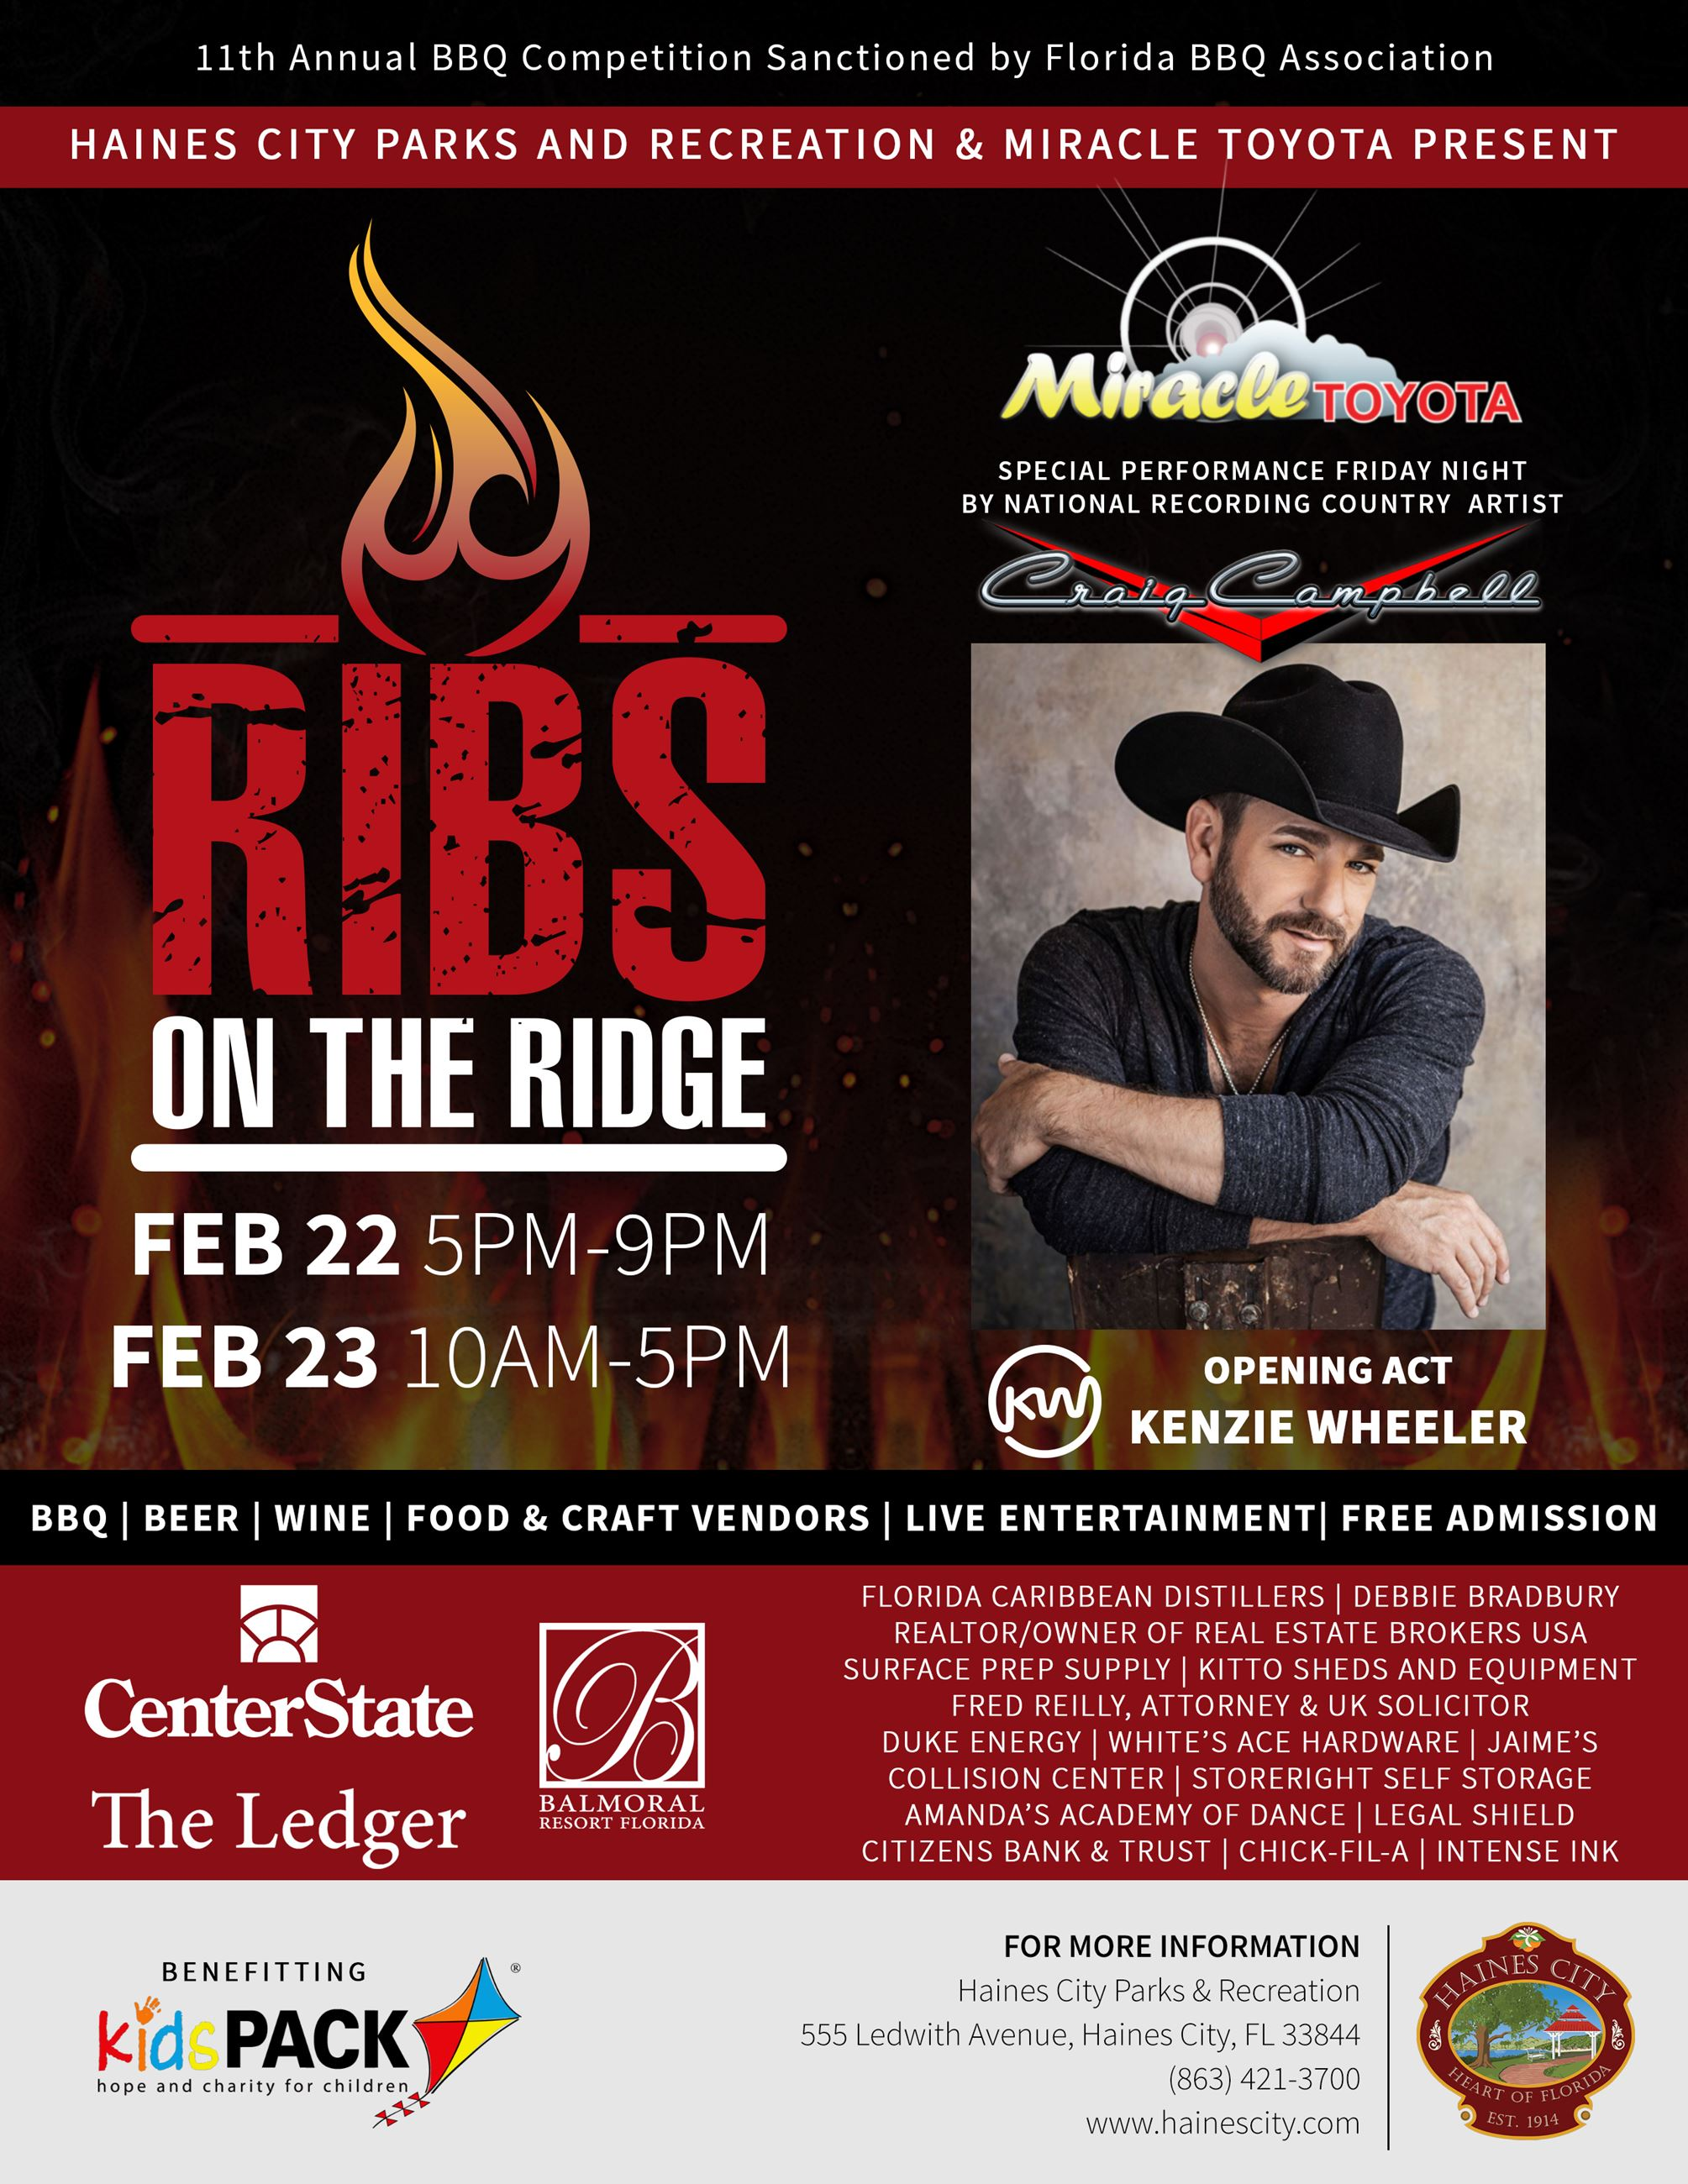 Ribs on the ridge 2019 flyer (image)